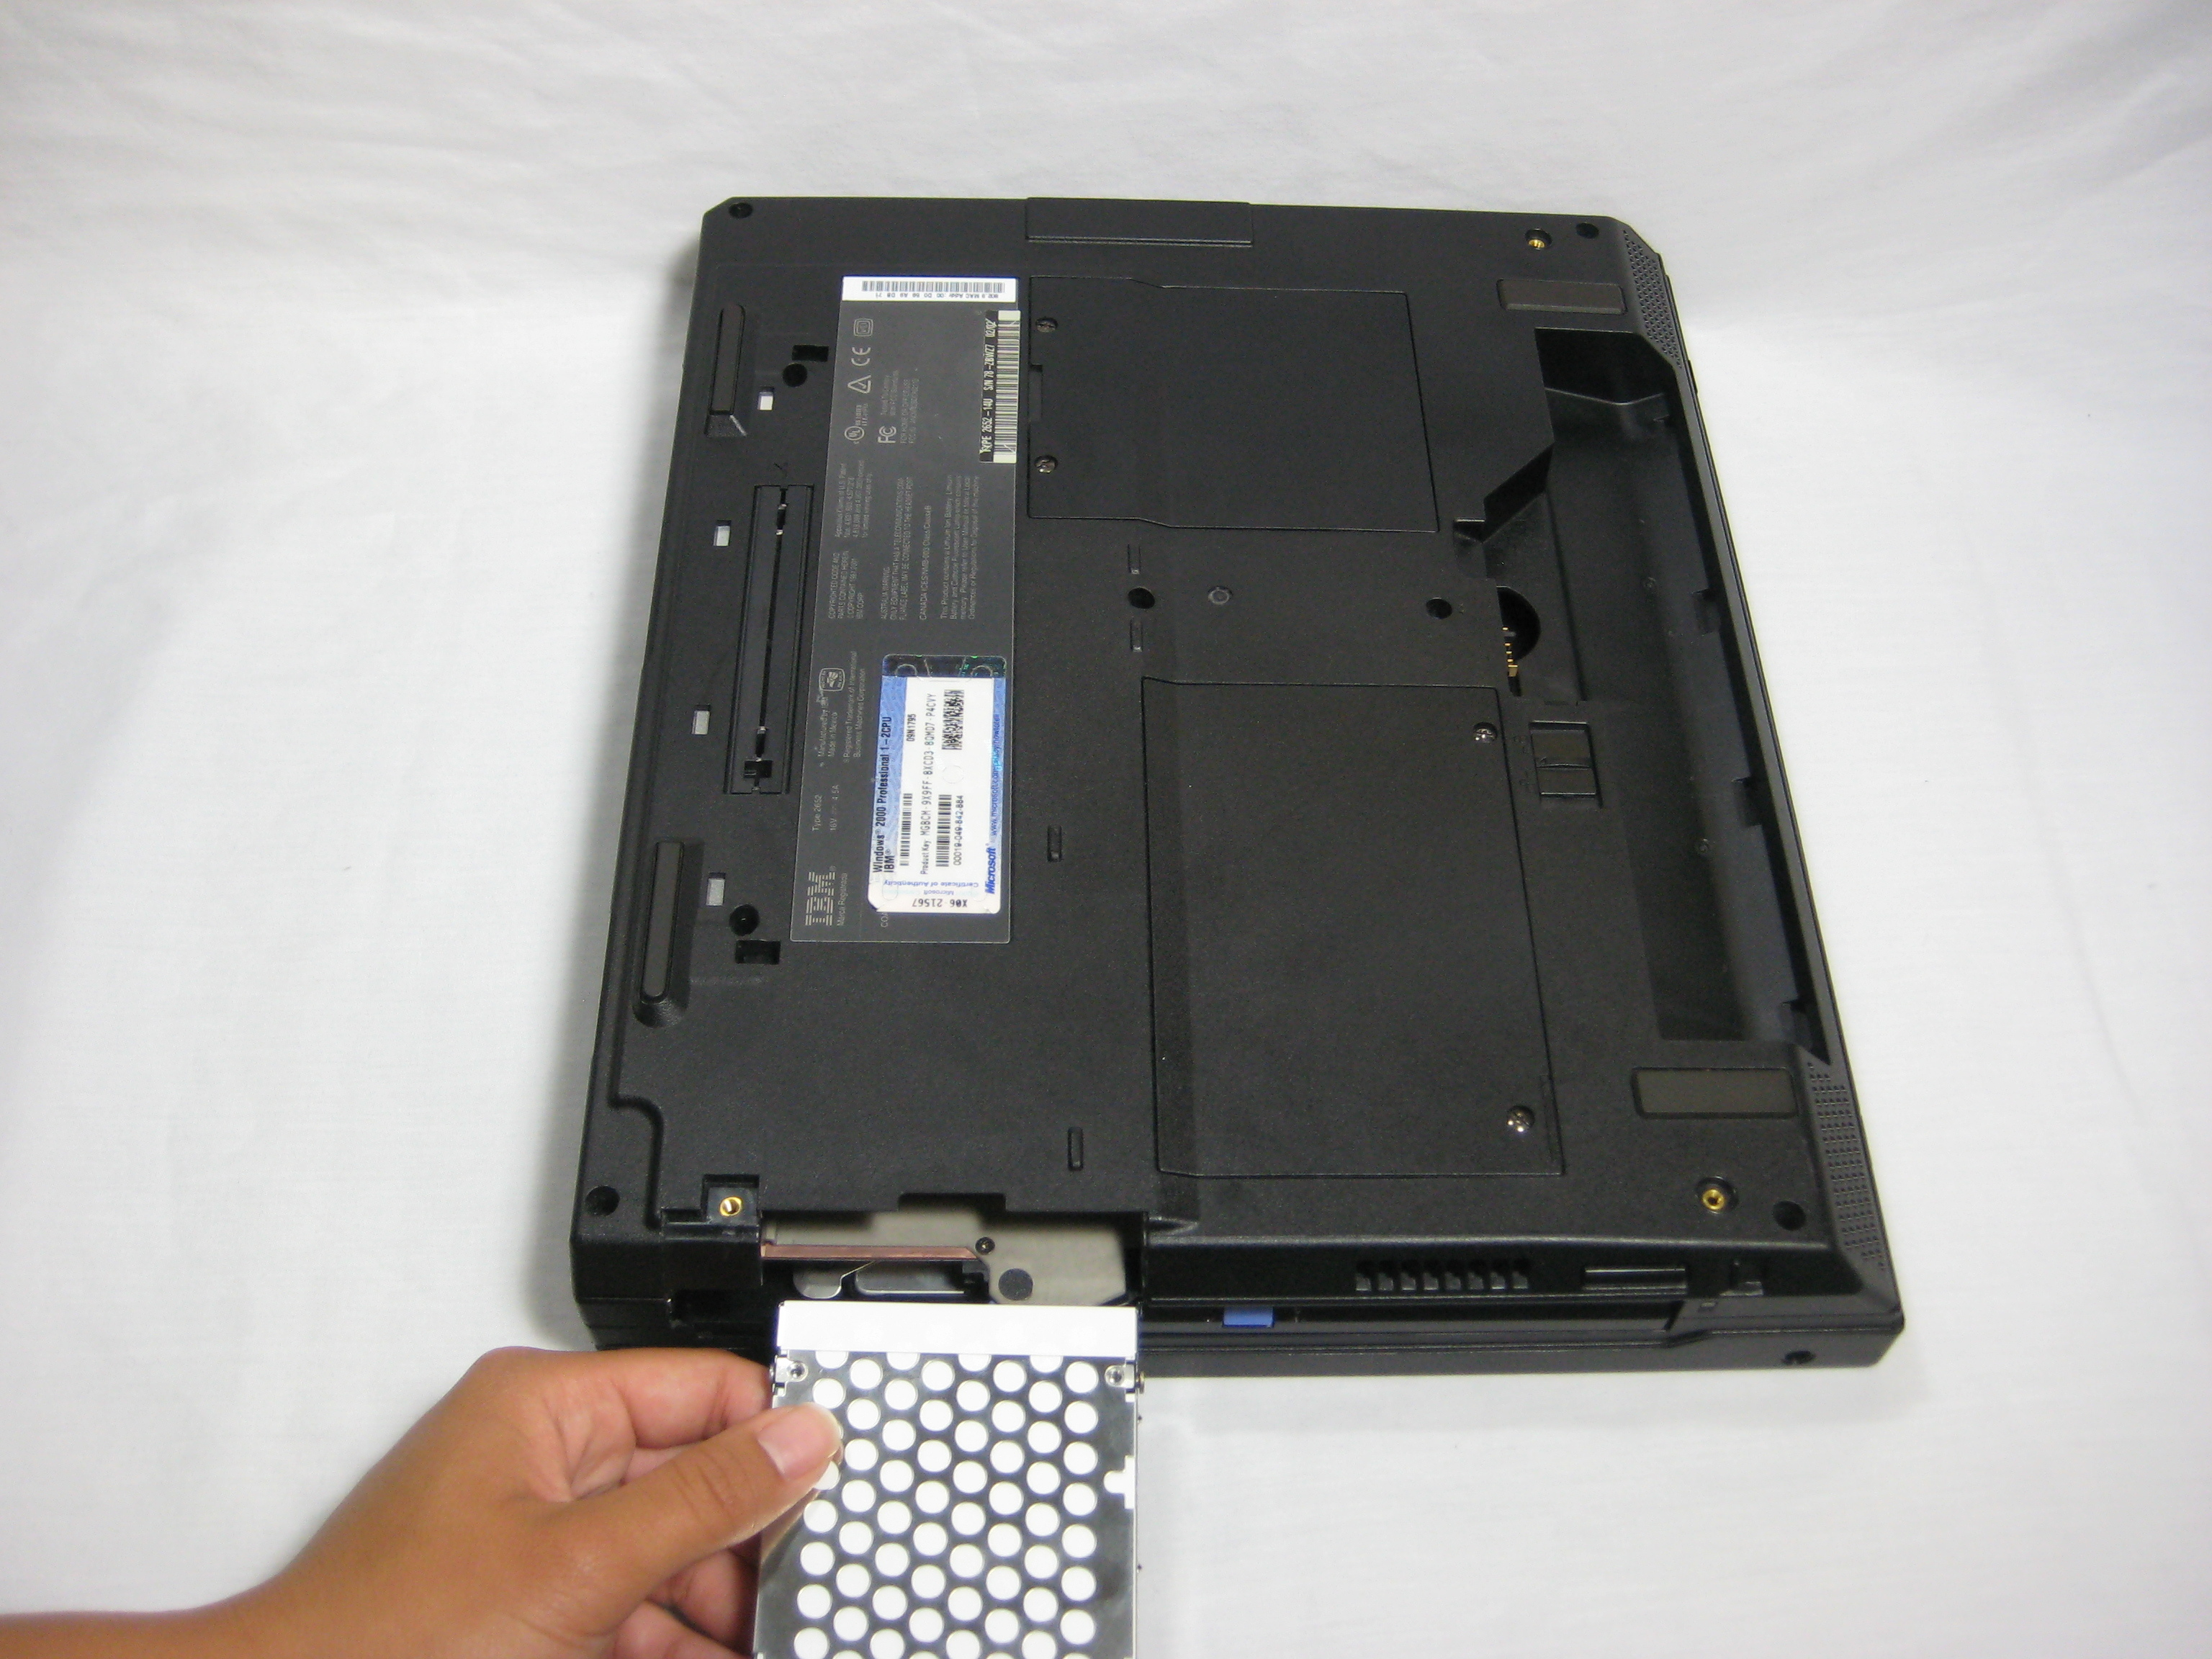 ibm thinkpad a30 repair ifixit rh ifixit com IBM ThinkPad Logo IBM ThinkPad 1992